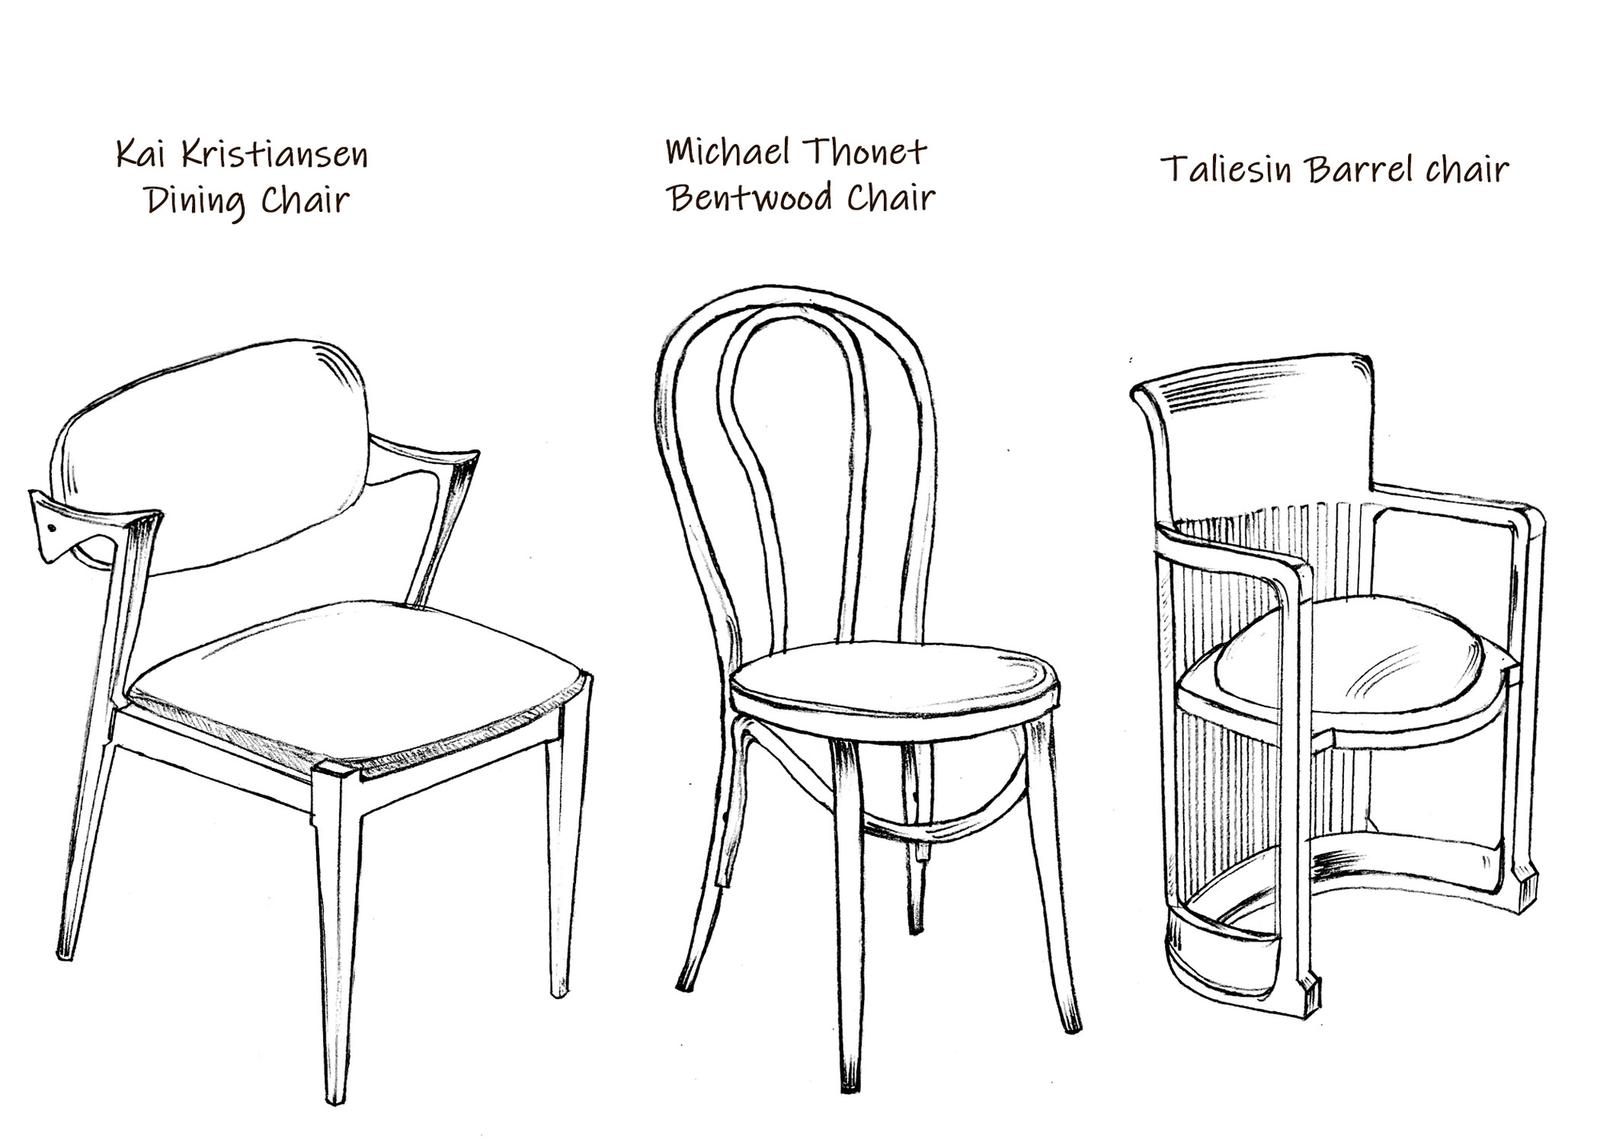 My favorite Chairs